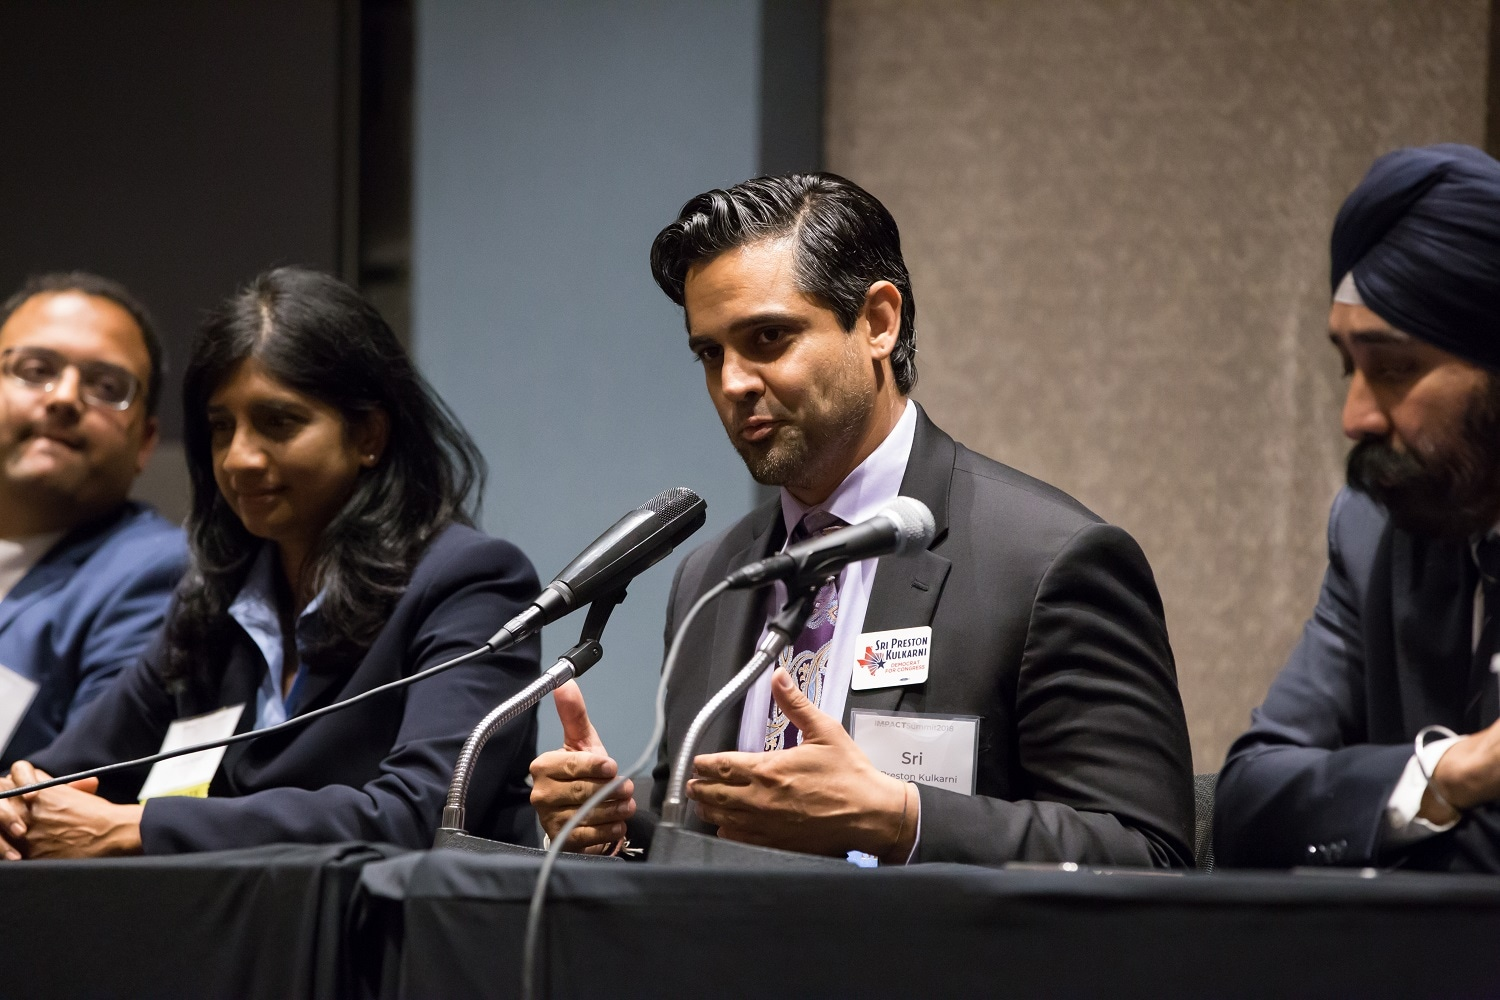 Sri Kulkarni, candidate for U.S. House (TX-22), speaks at Impact Summit, June 7, 2018 in Washington, D.C. with (L-R) Ram Villivalam, candidate for Illinois State Senate; Aruna Miller, former candidate for U.S. House (MD-06); and Ravi Bhalla, Mayor of Hoboken, NJ.